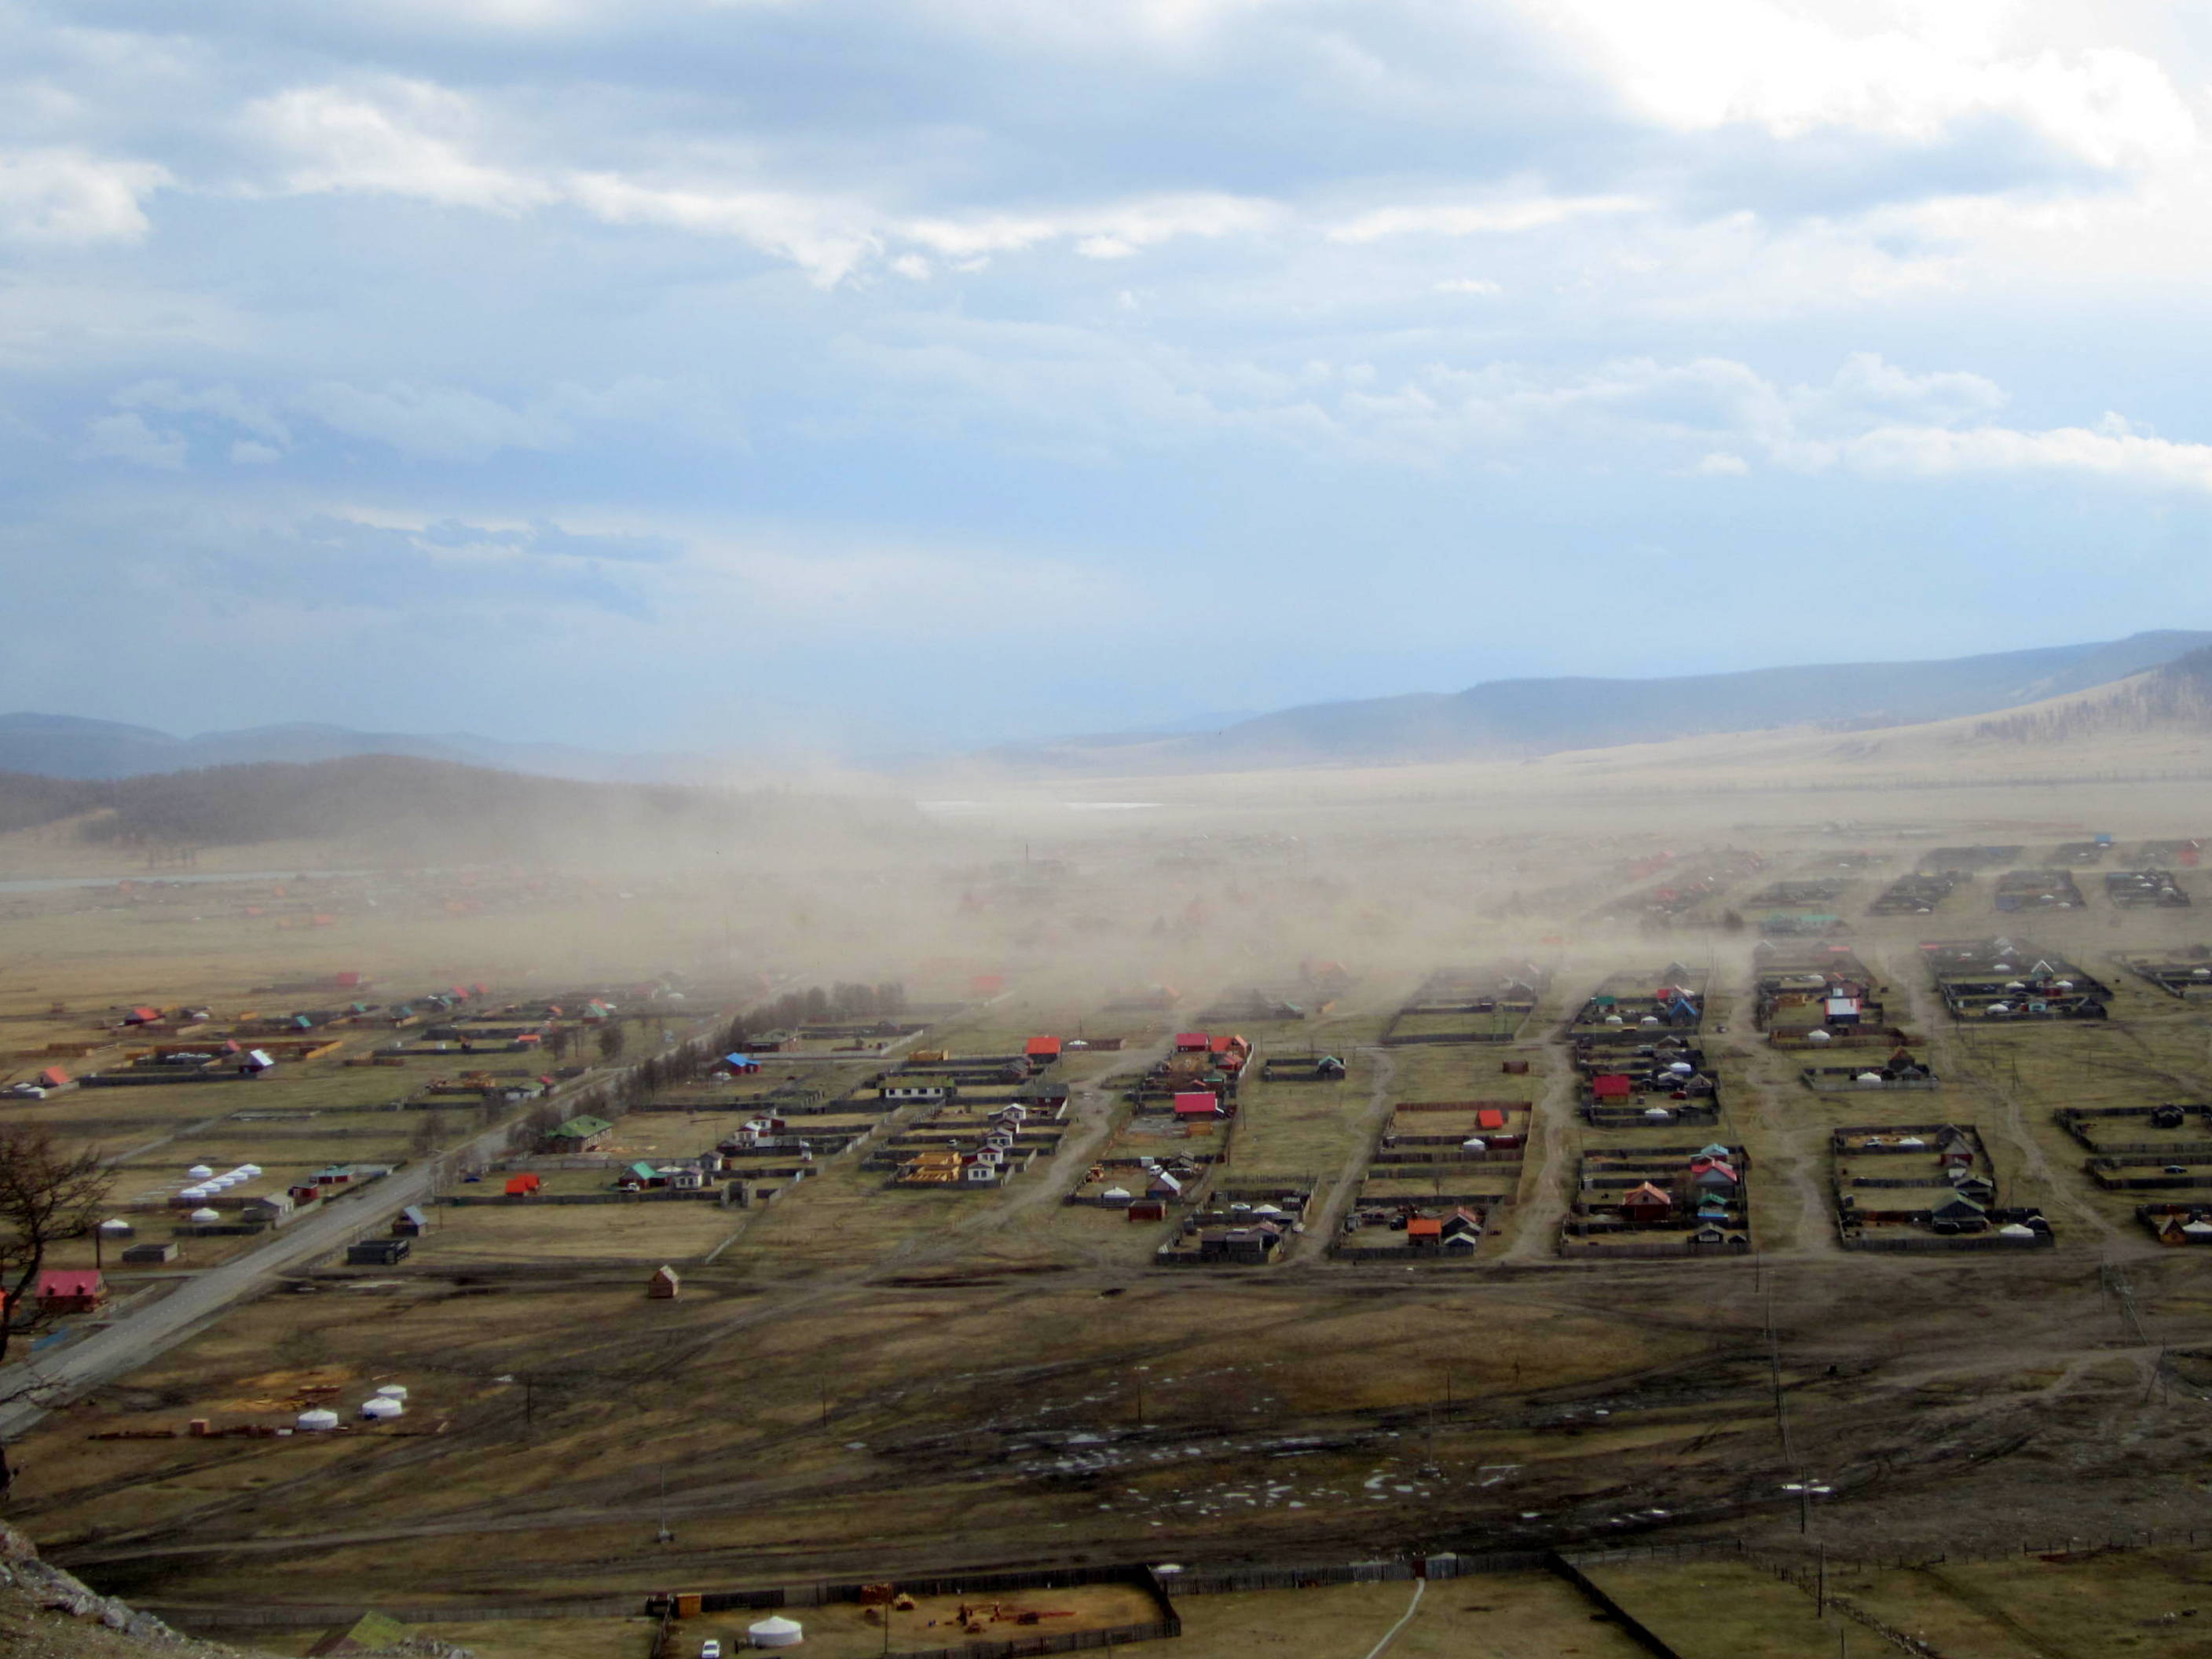 Moments after the last picture was taken, a dust storm rose up over Khatgal, Mongolia